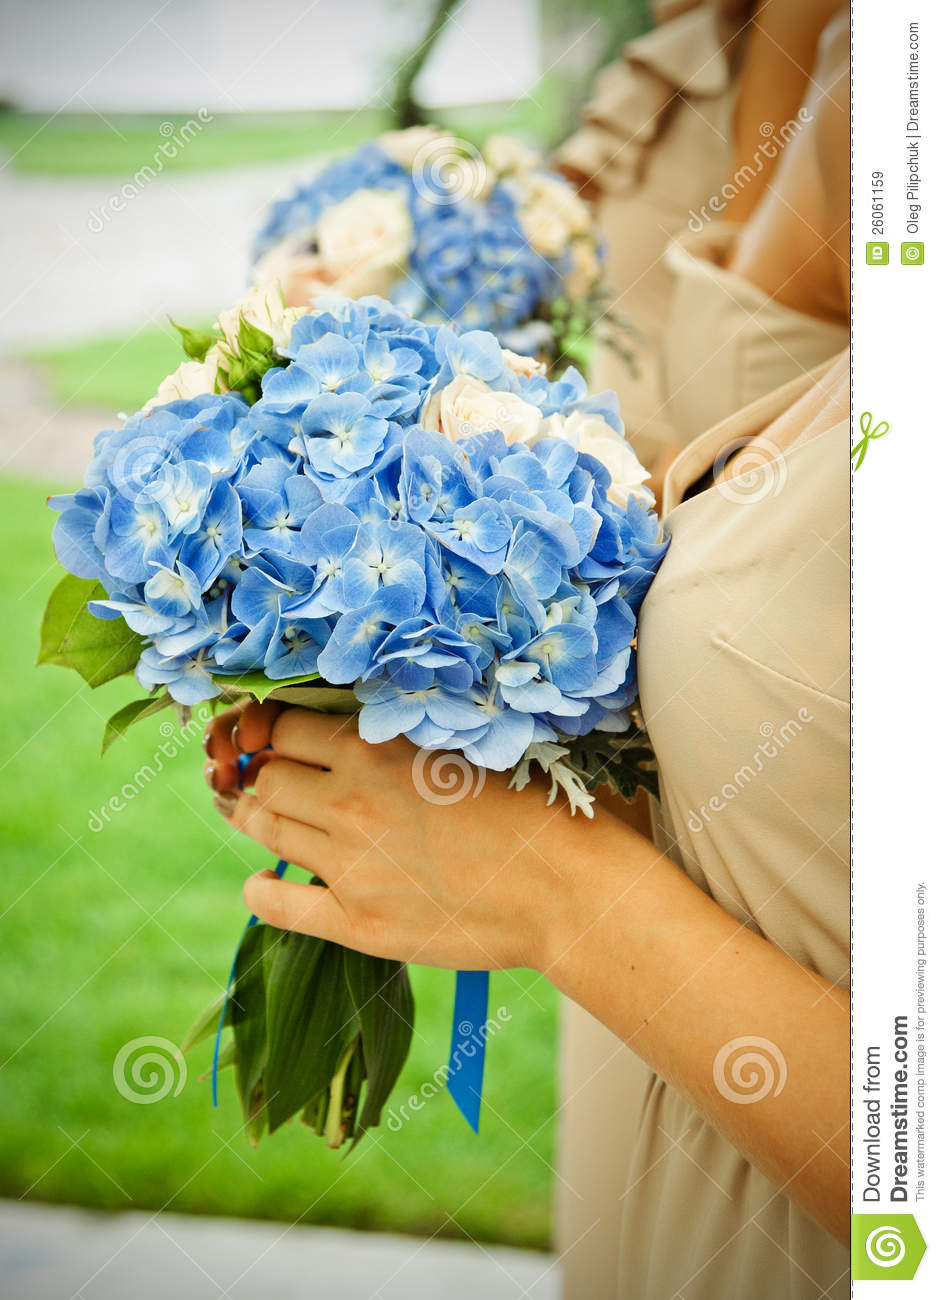 Bouquets With Dark Blue Violets Stock Image - Image of ...